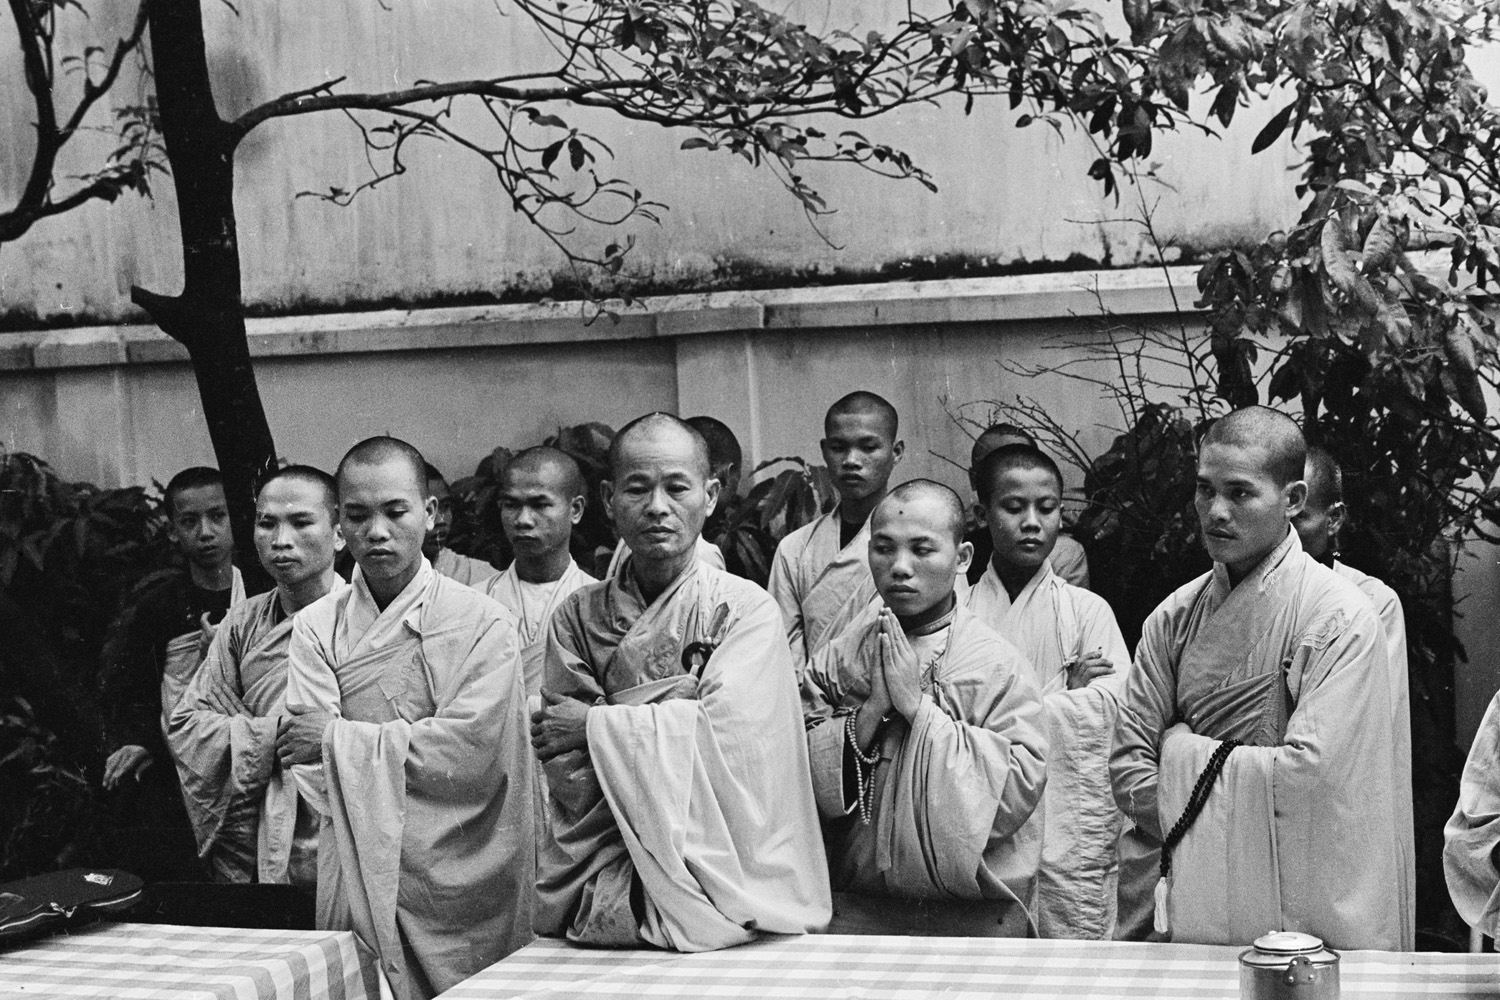 All pictures taken on June 11, 1963                               Buddhist leaders warned Browne that a major protest would take place in Saigon. He arrived at the Buddhist pagoda where the protest was being staged to find monks and nuns already chanting.